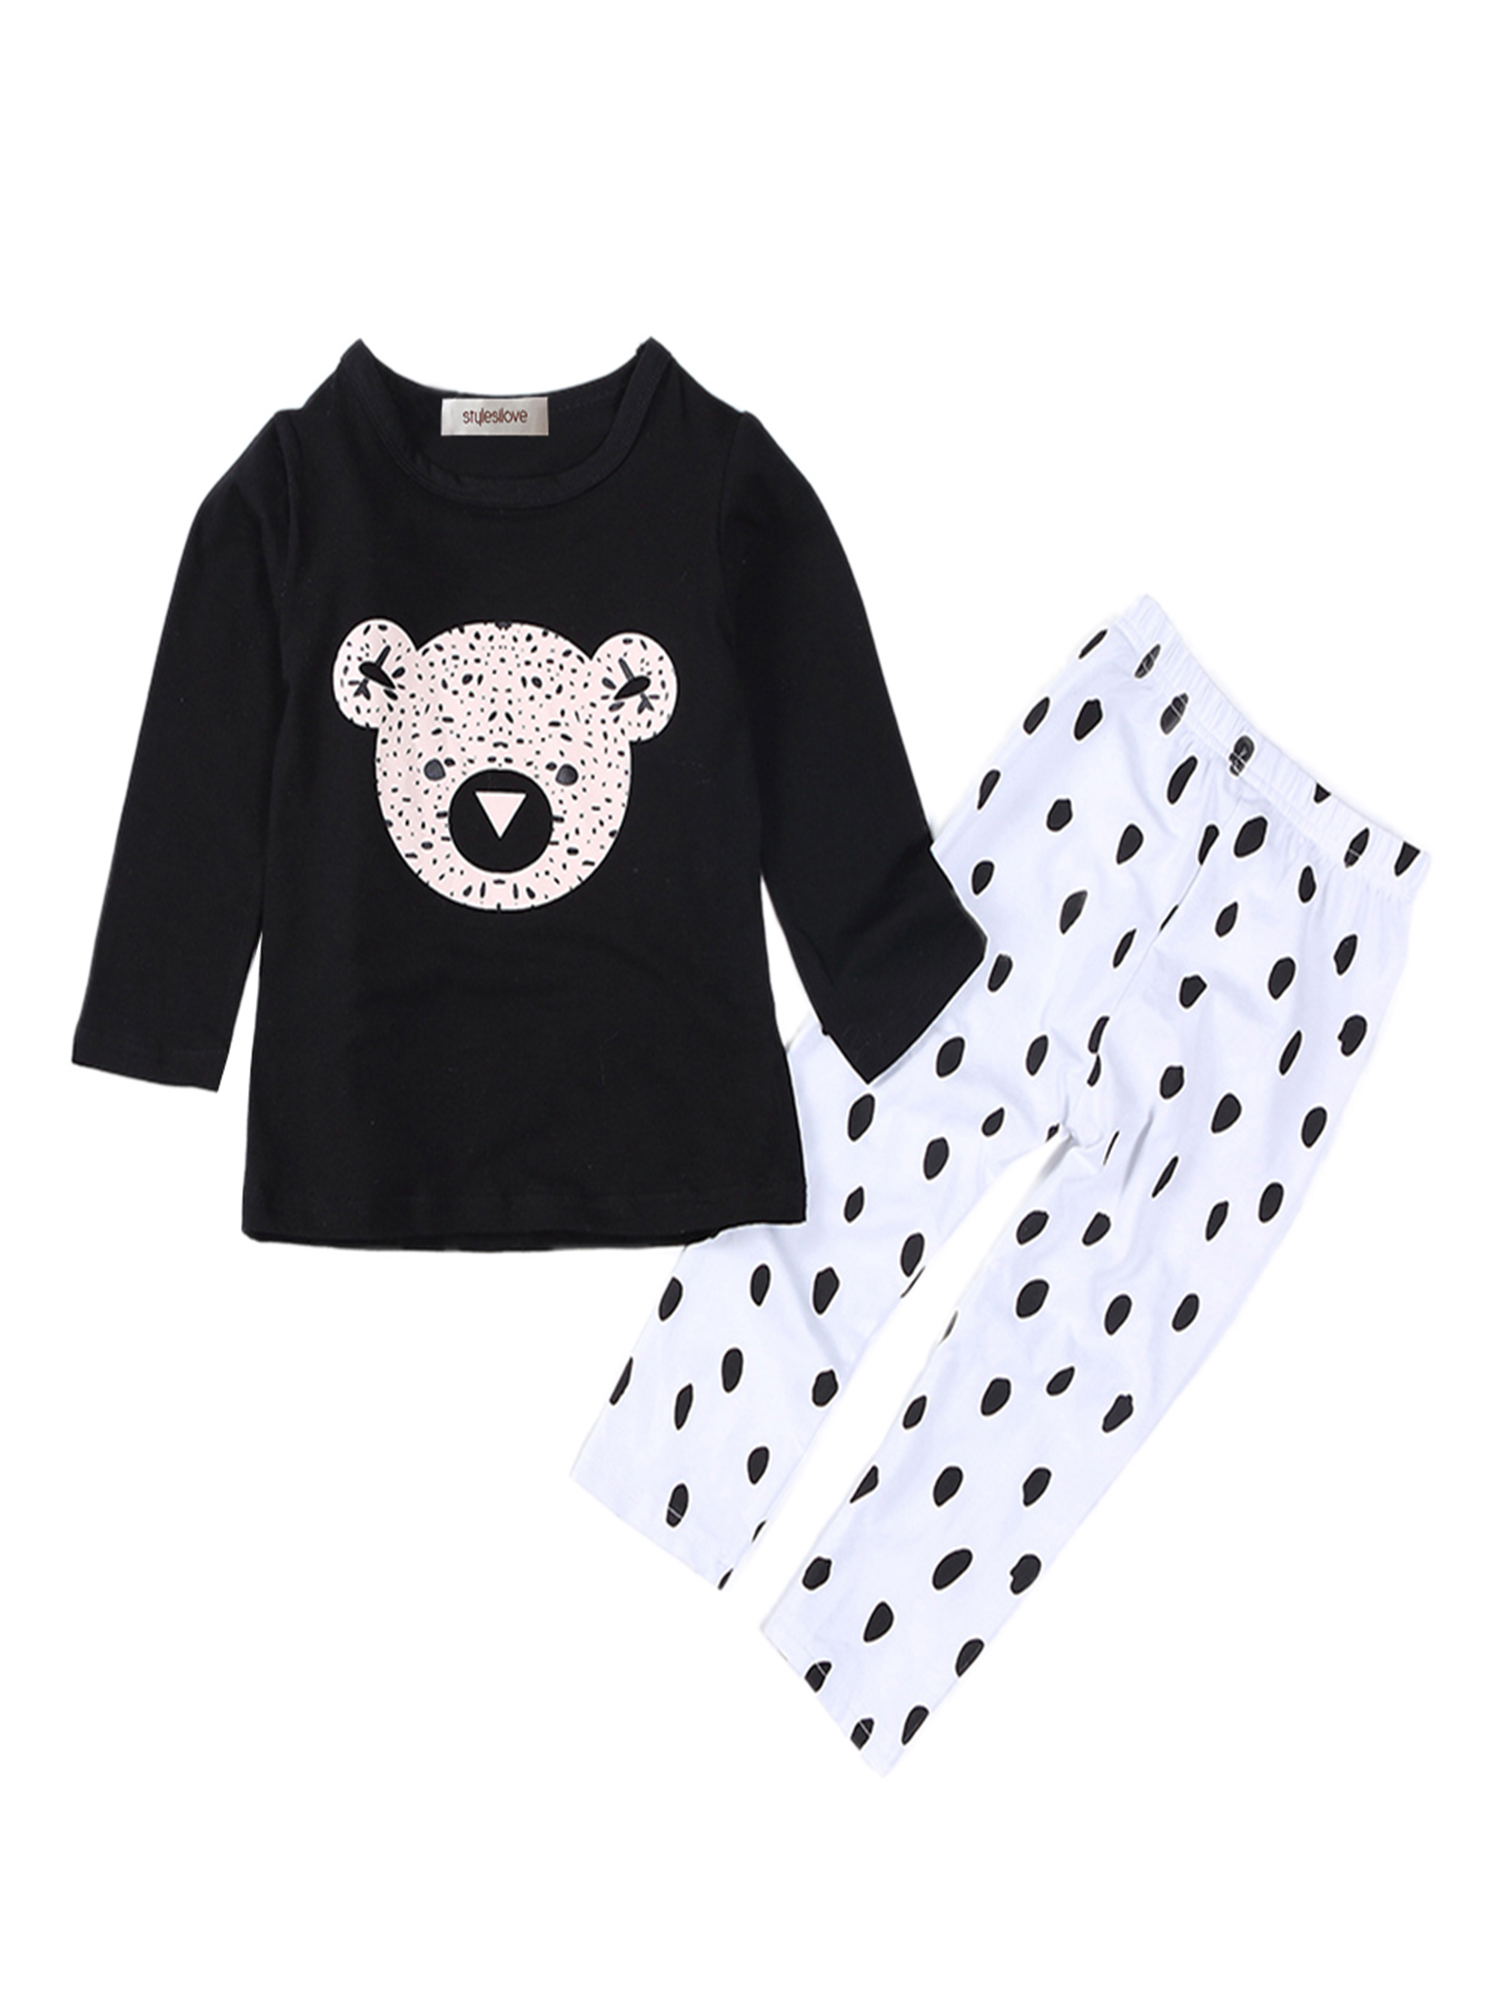 StylesILove Cute Graphic T-shirt and Pants Baby Boy 2-pc Set (18-24 Months, Teddy Bear)